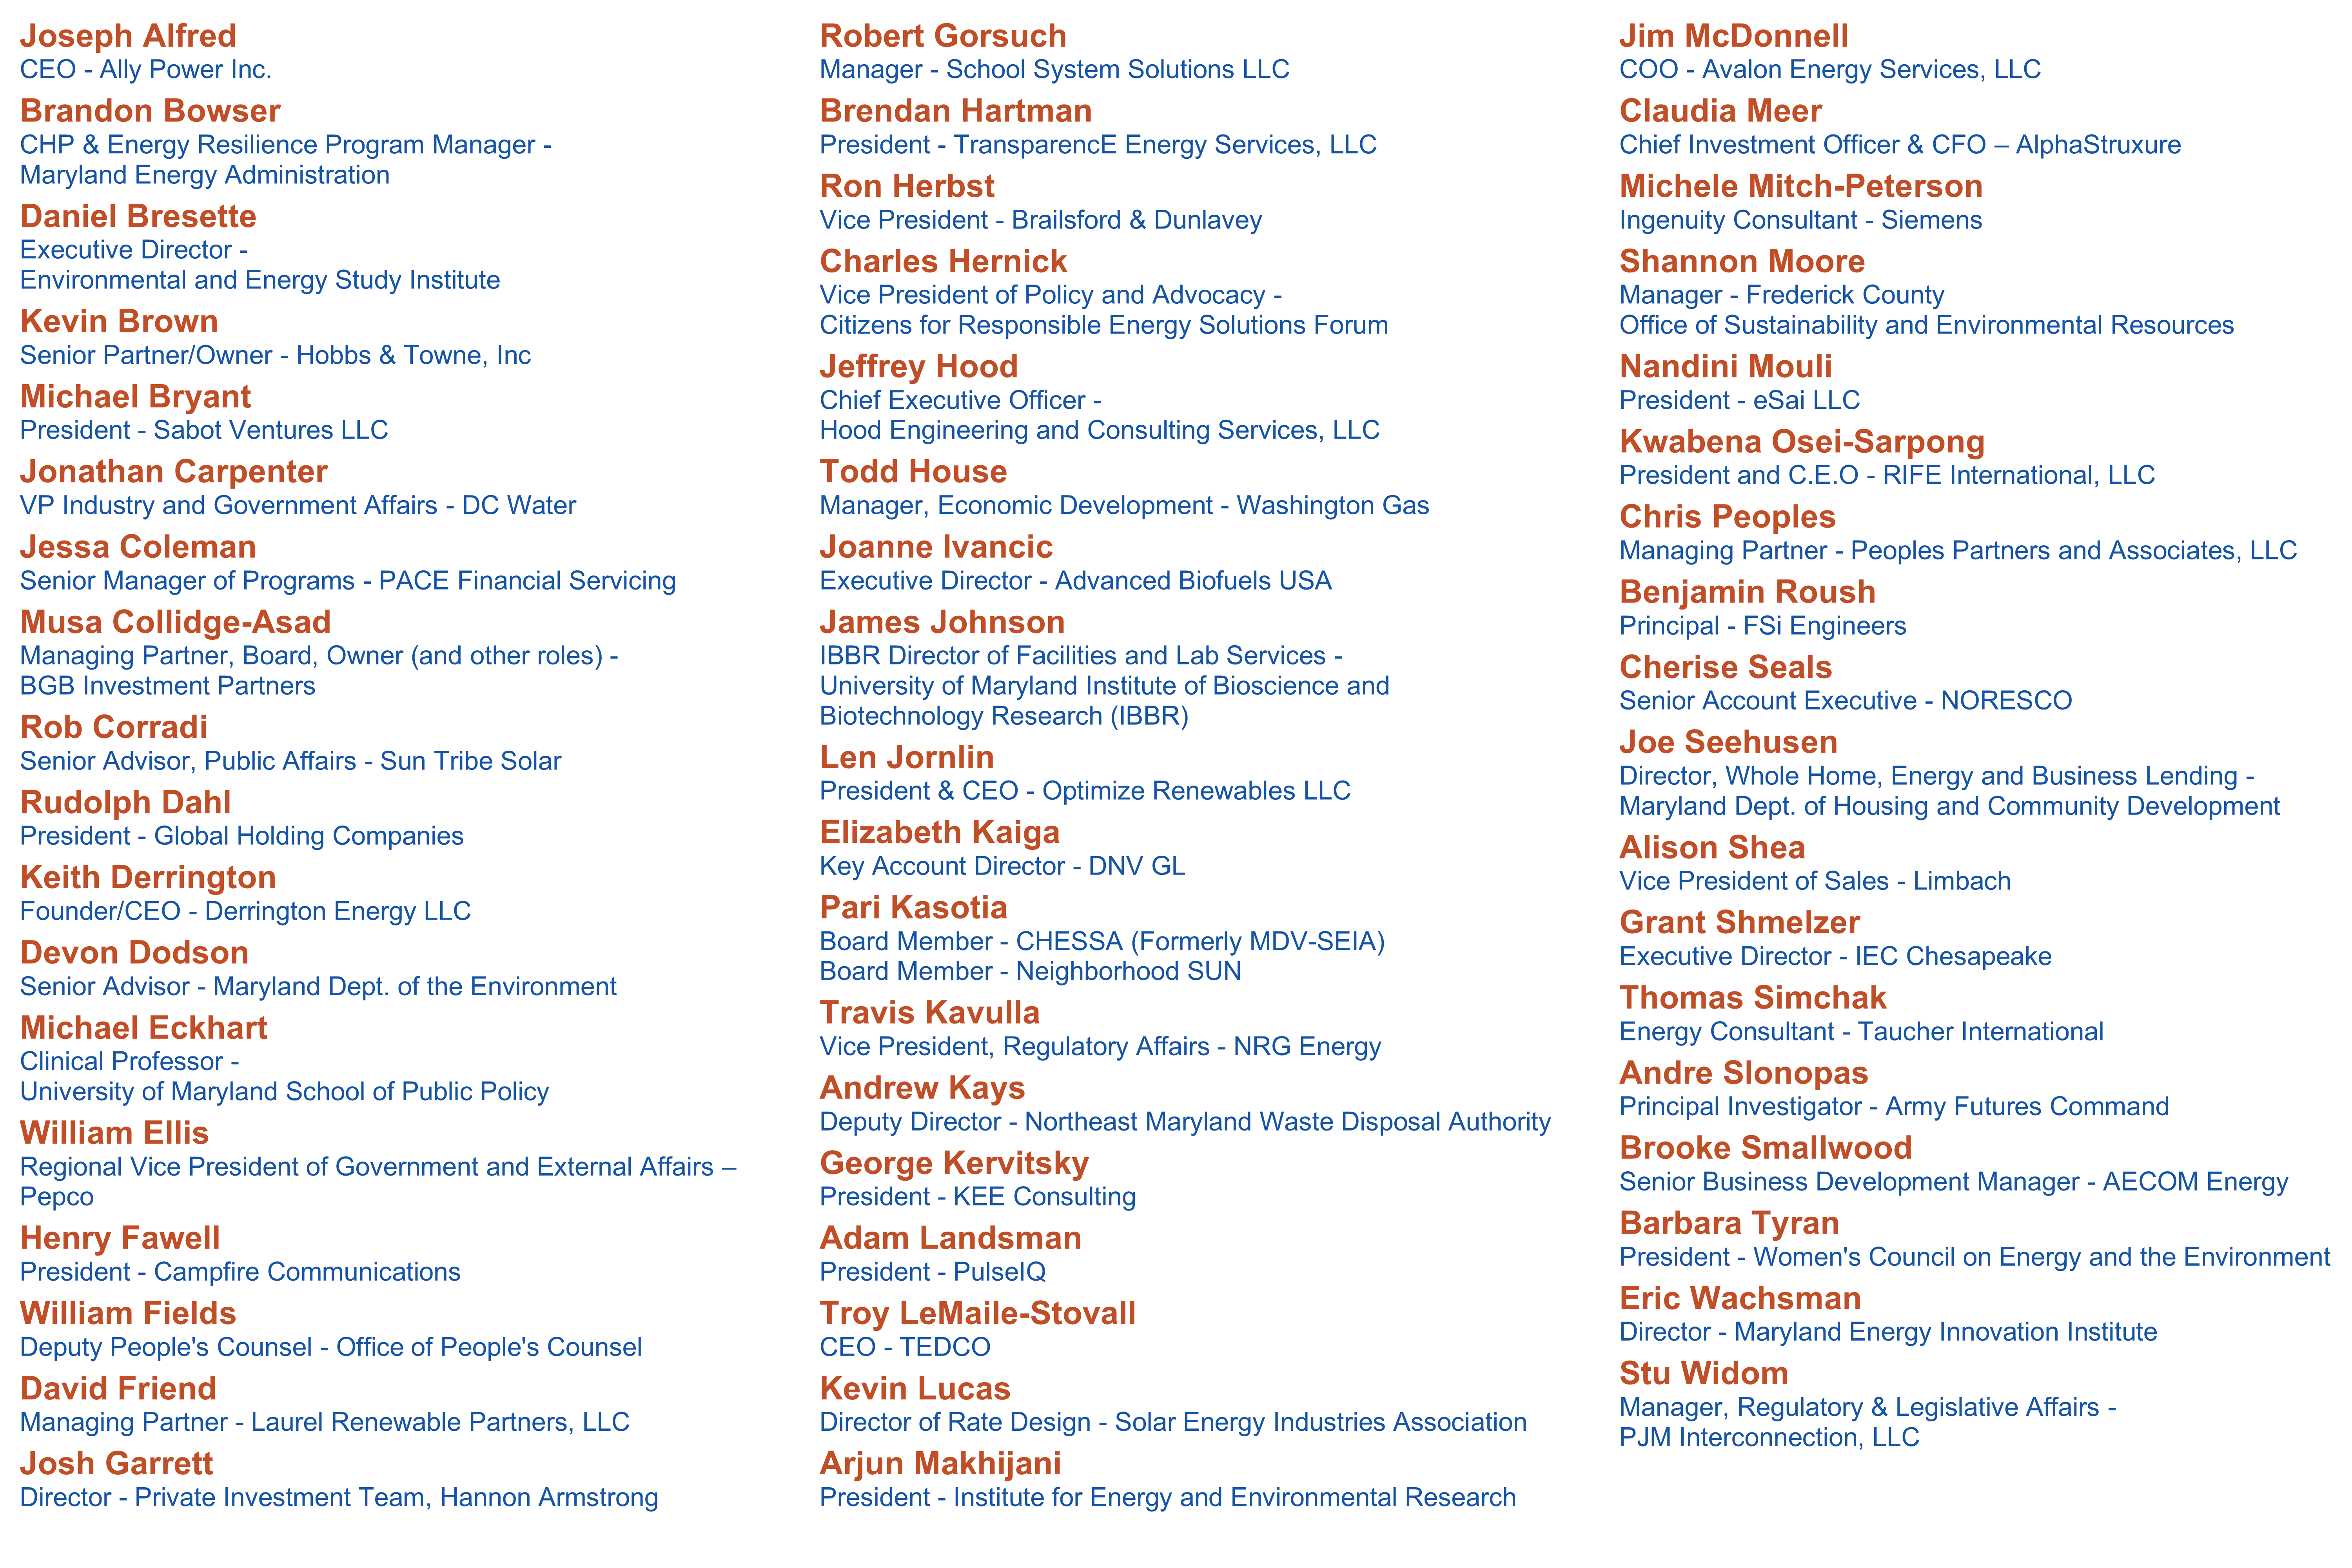 Advisory Council Roster 03.31.2021